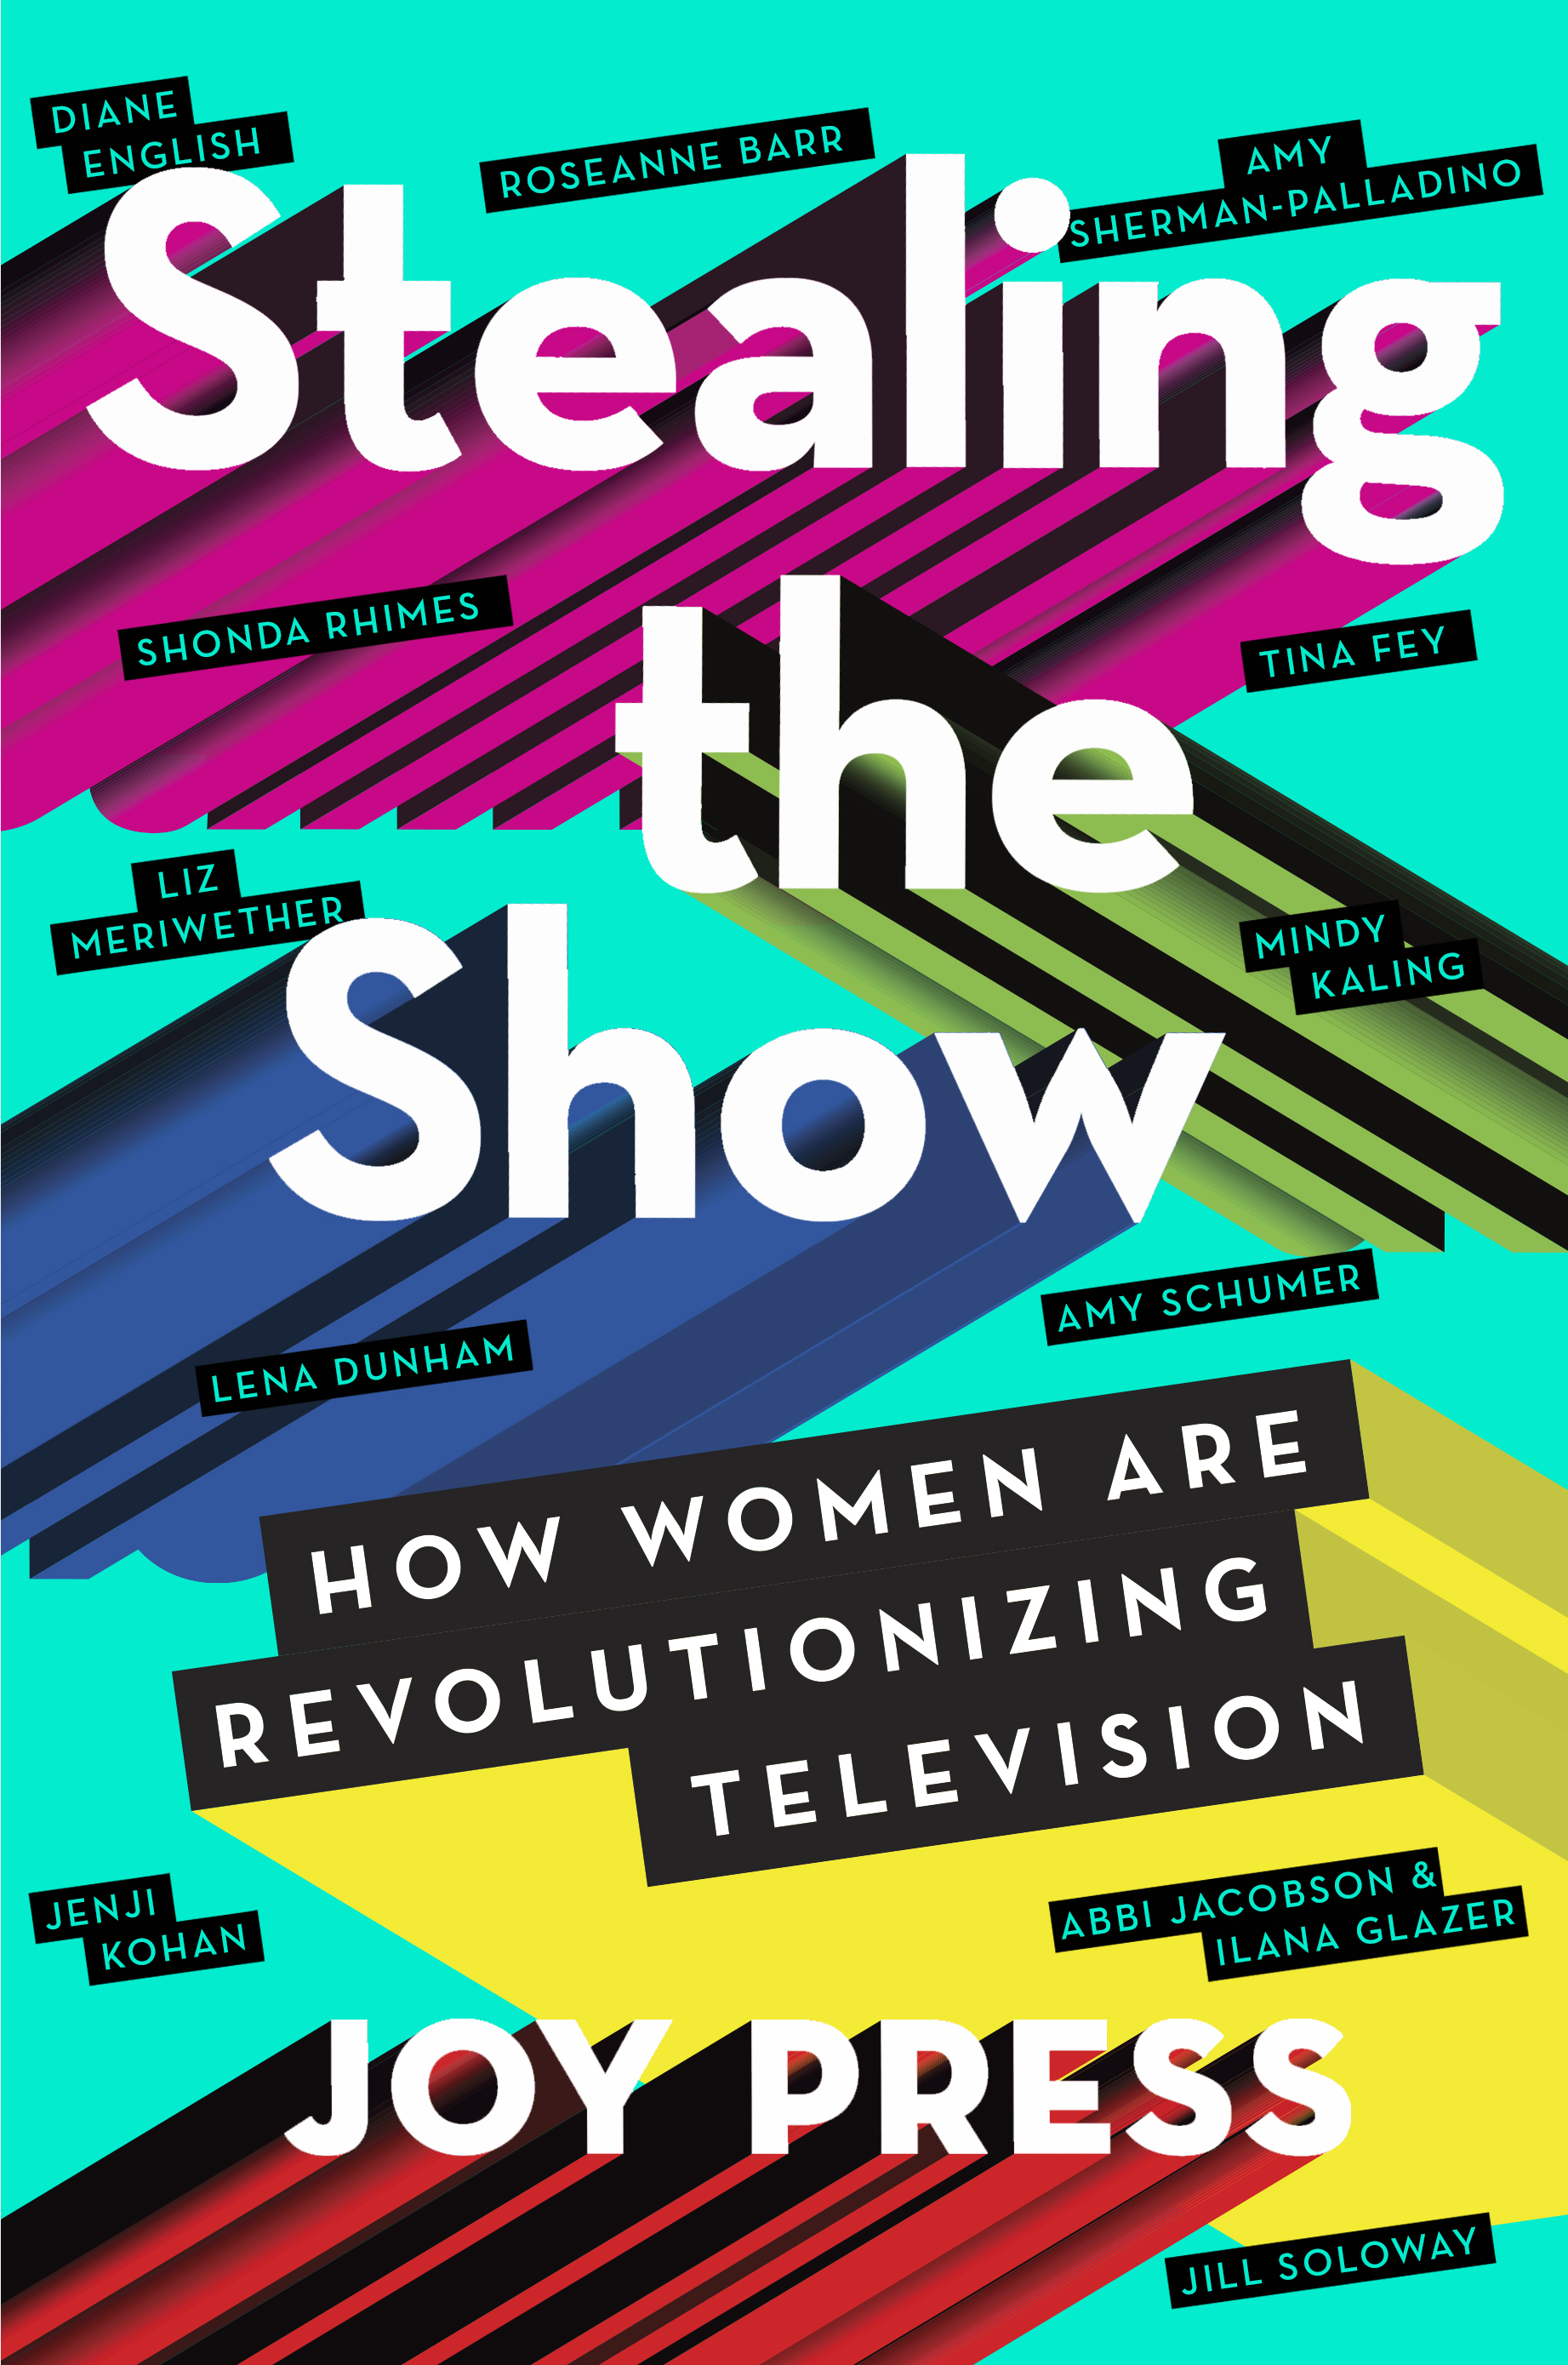 the rise of the female showrunner— and a new golden era of TELEVISION -